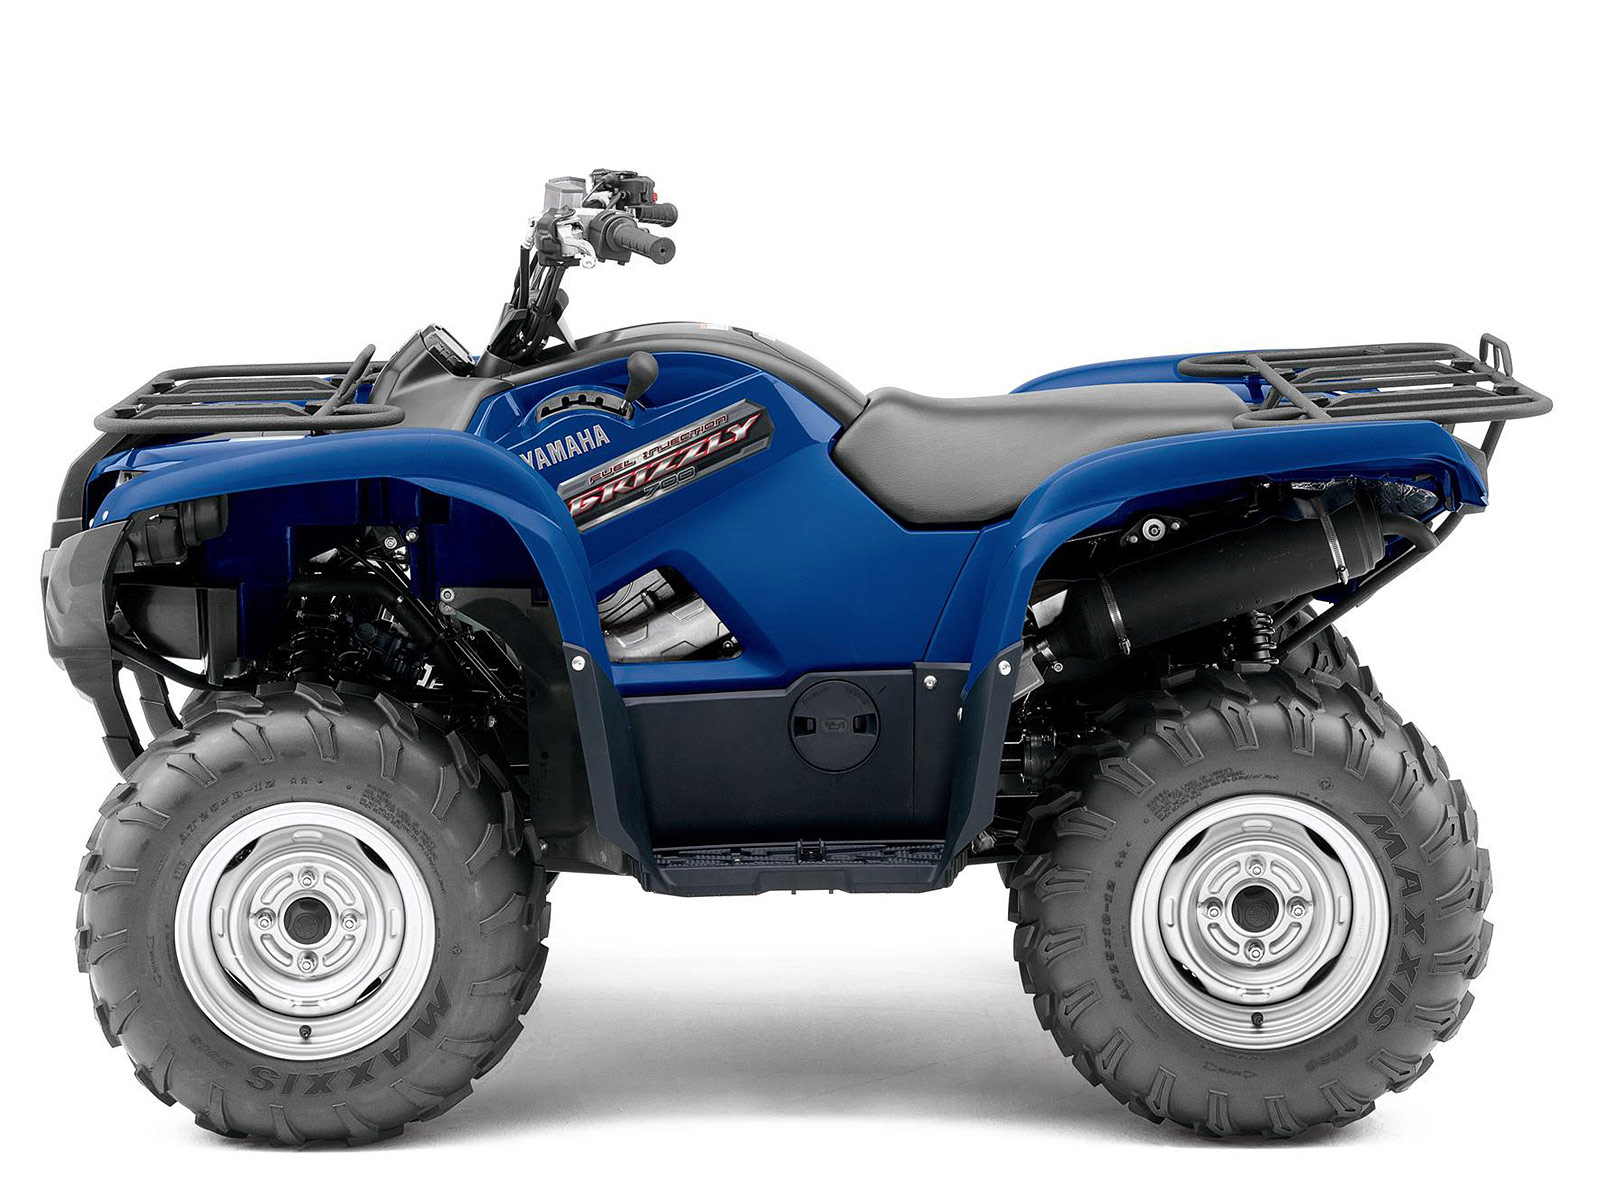 hight resolution of 2013 yamaha grizzly 700 fi auto 4x4 atv pictures 480x360 pixels